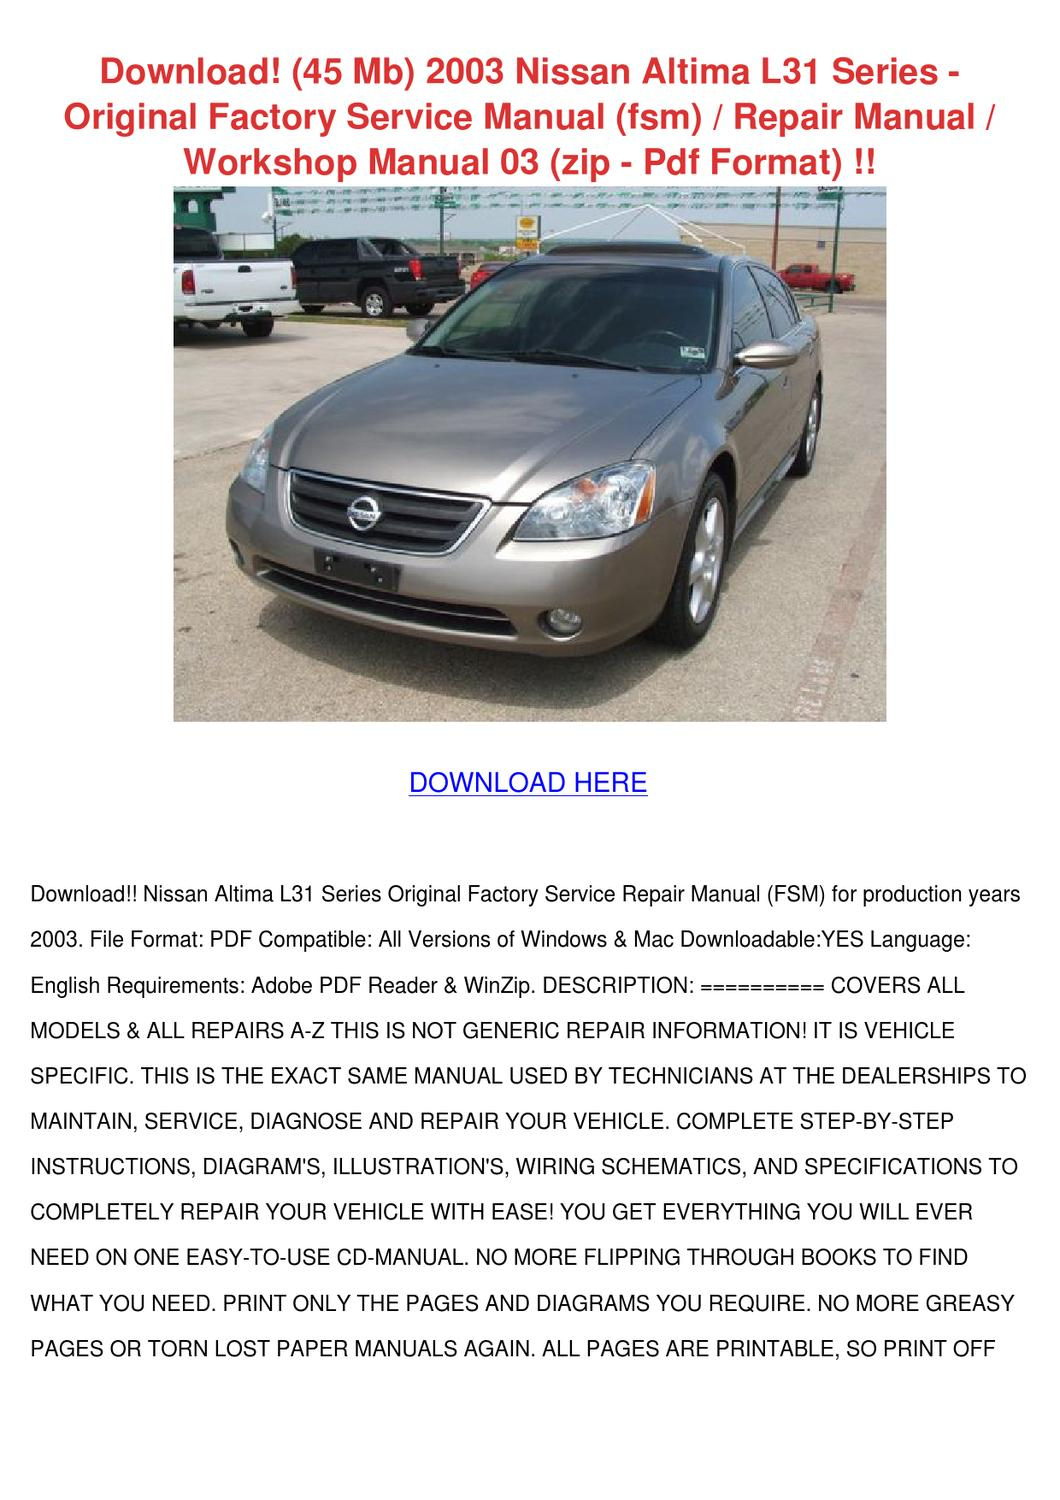 Download 45 Mb 2003 Nissan Altima L31 Series by Karre Giovanelli ...